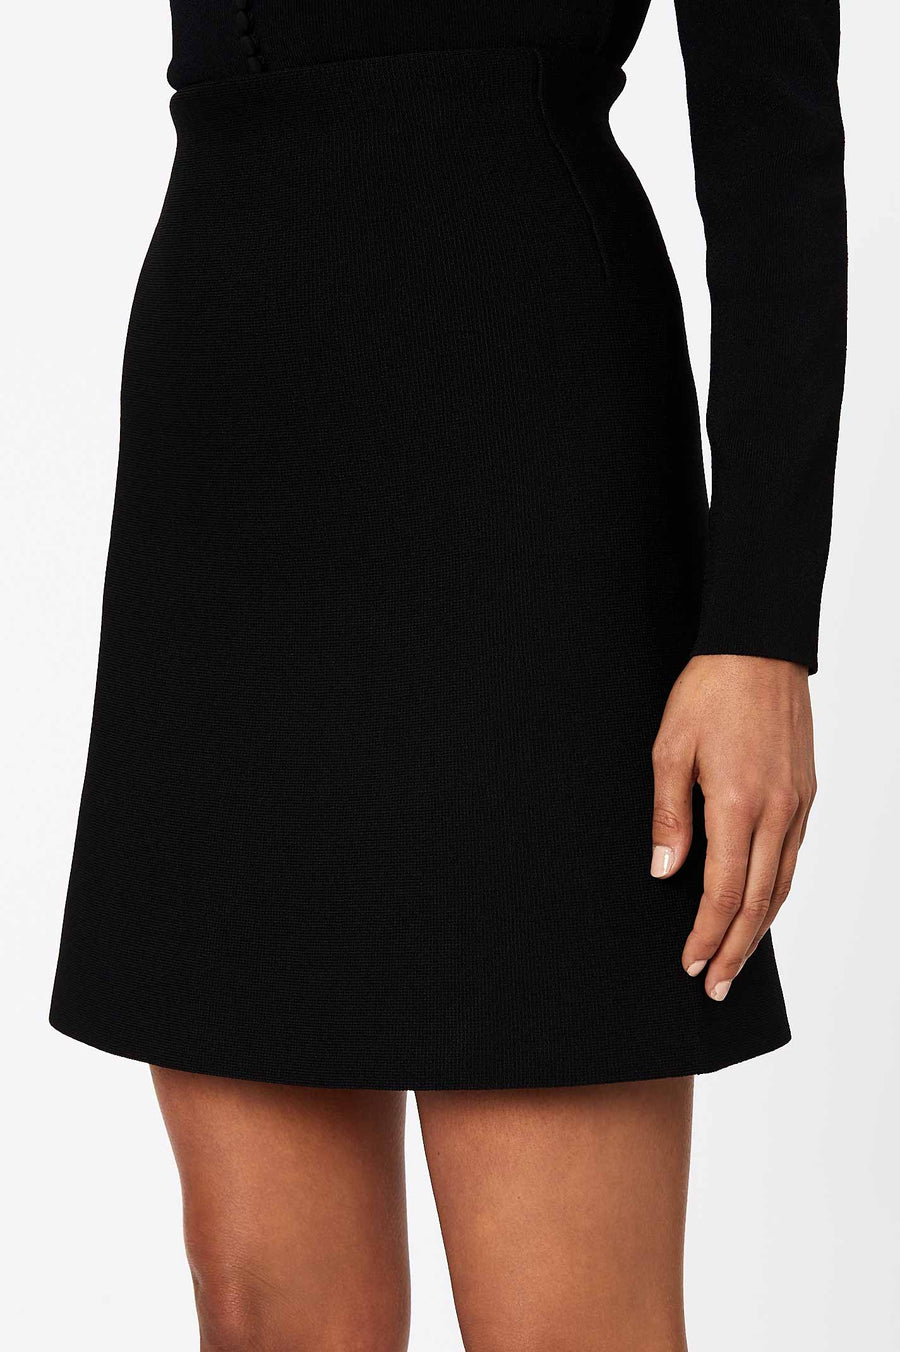 CREPE KNIT SHORT A-LINE SKIRT BLACK